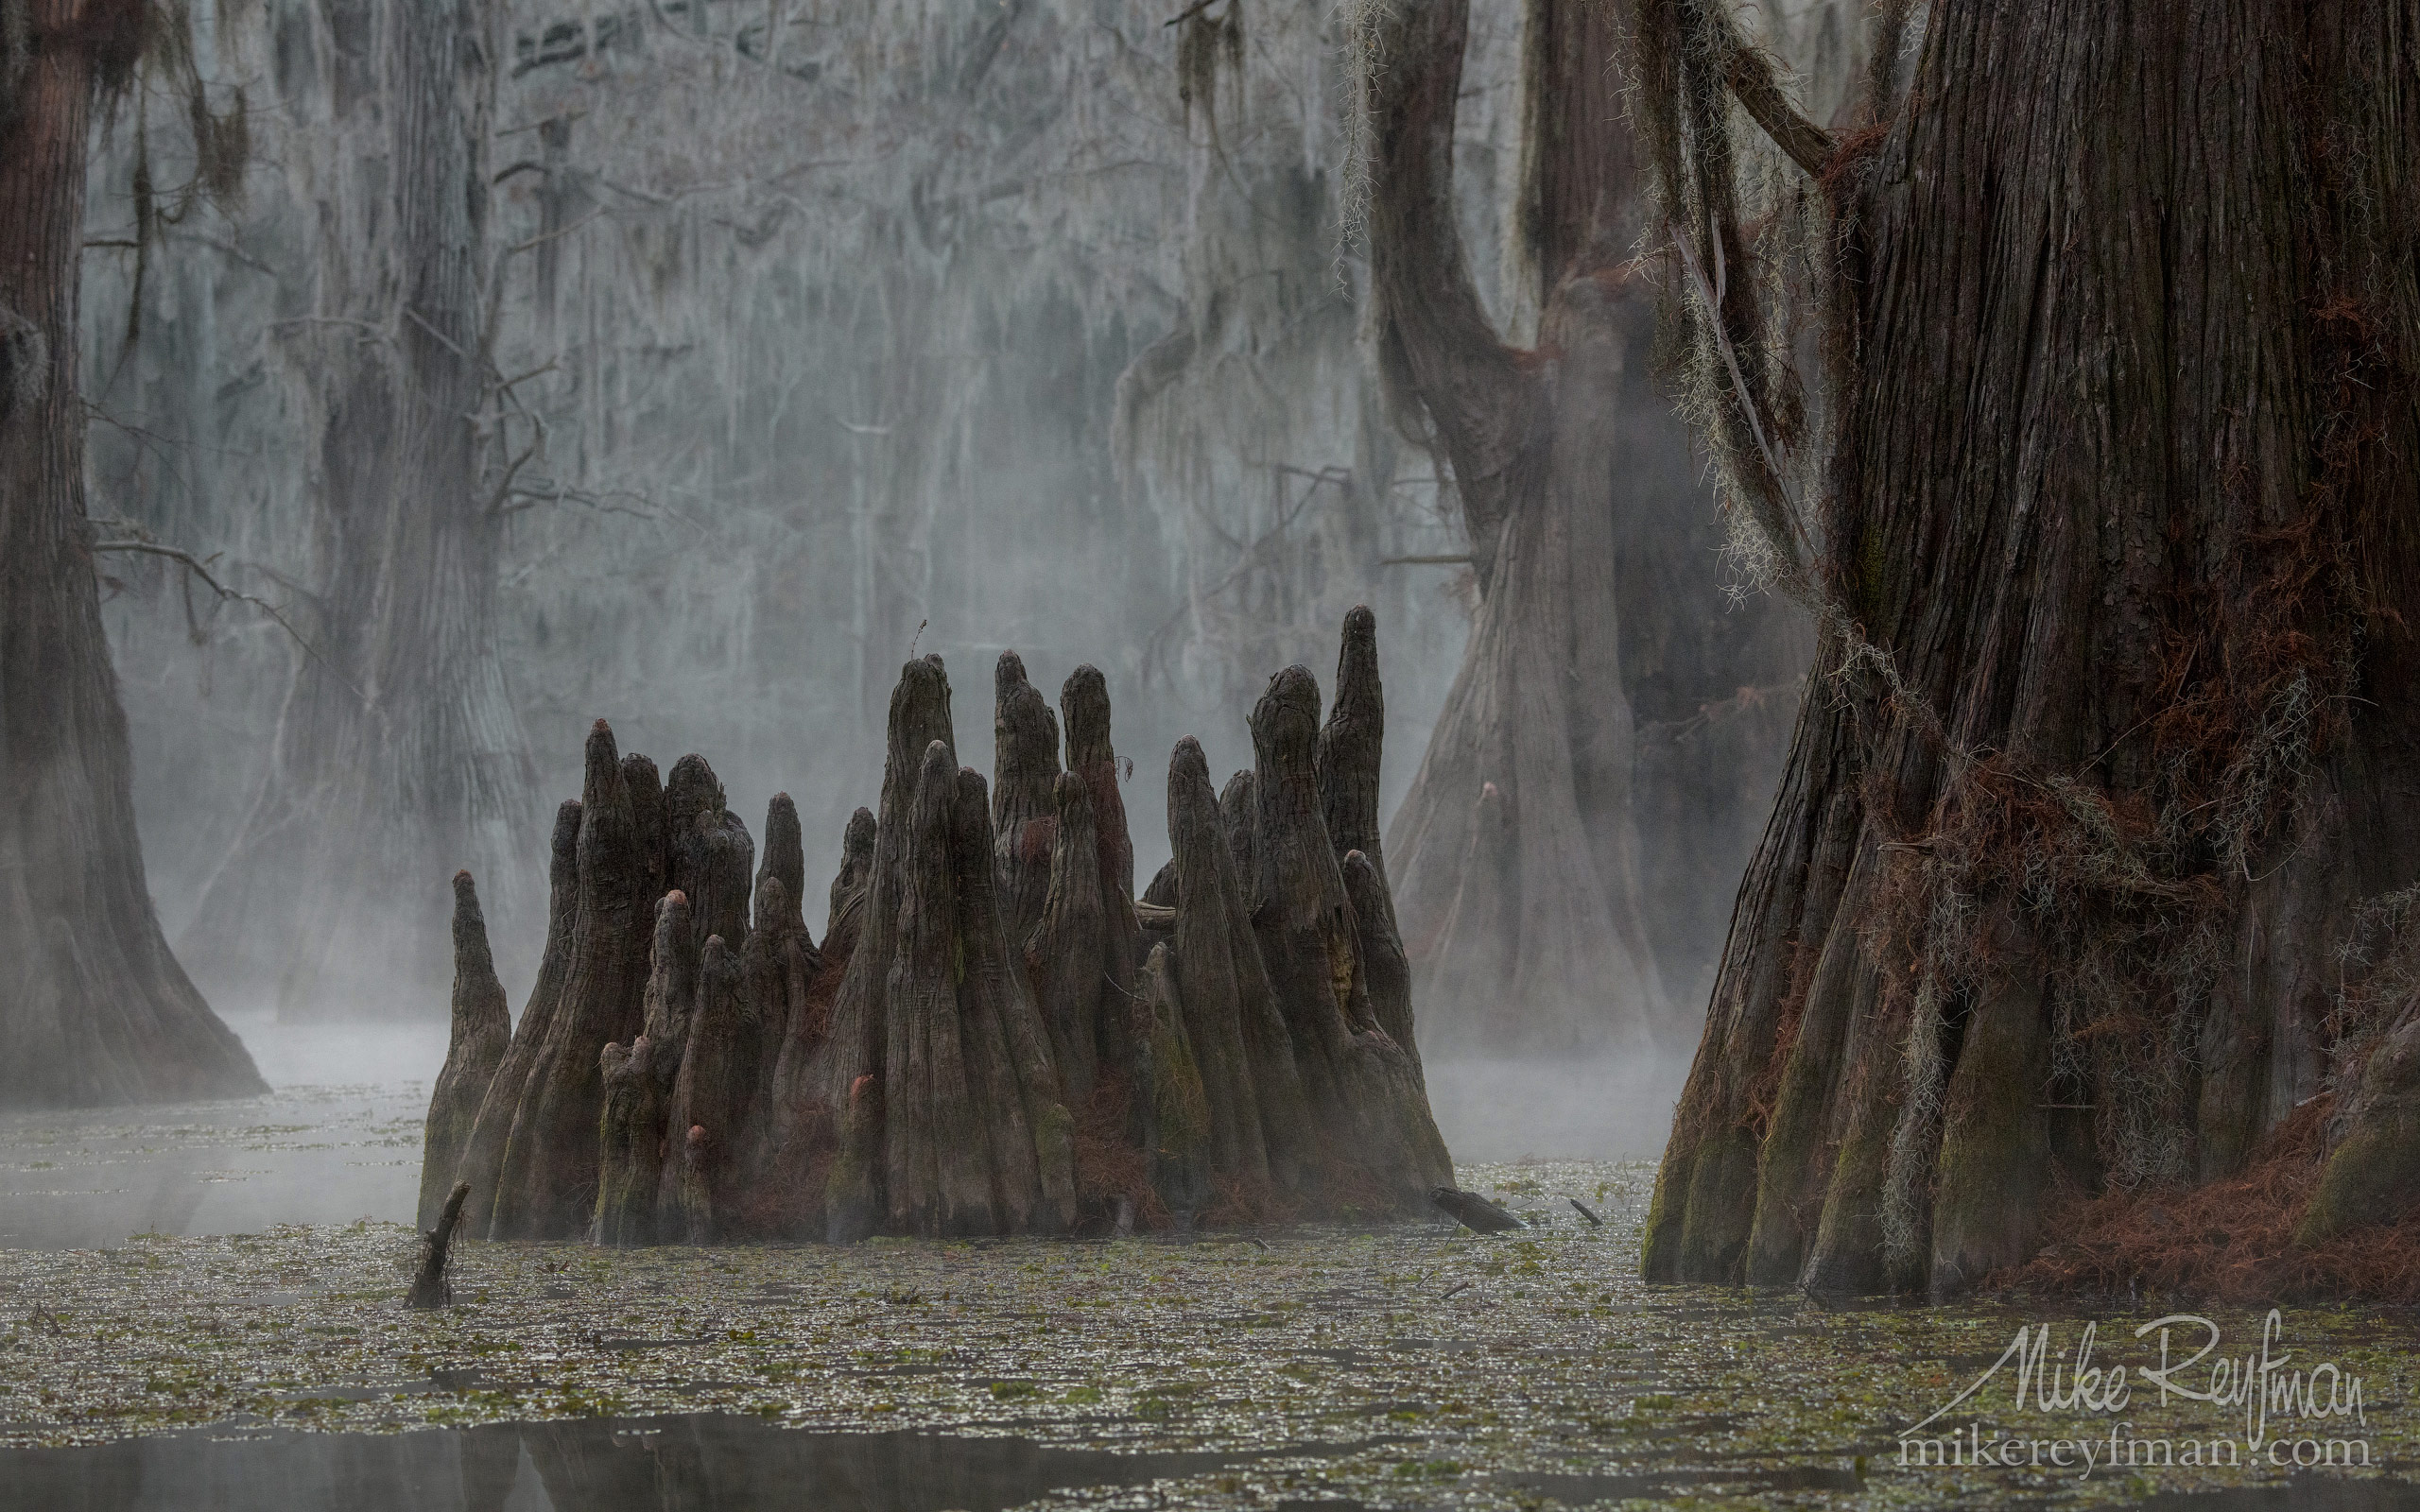 Swamp King's Crown. Bald Cypress trees in the swamp. Foggy morning on Caddo Lake, Texas, US 002-LT1-50A3299.jpg - Bold Cypress and Tupelo Trees in the swamps of Atchafalaya River Basin. Caddo, Martin and Fousse Lakes. Texas/Louisiana, USA. - Mike Reyfman Photography